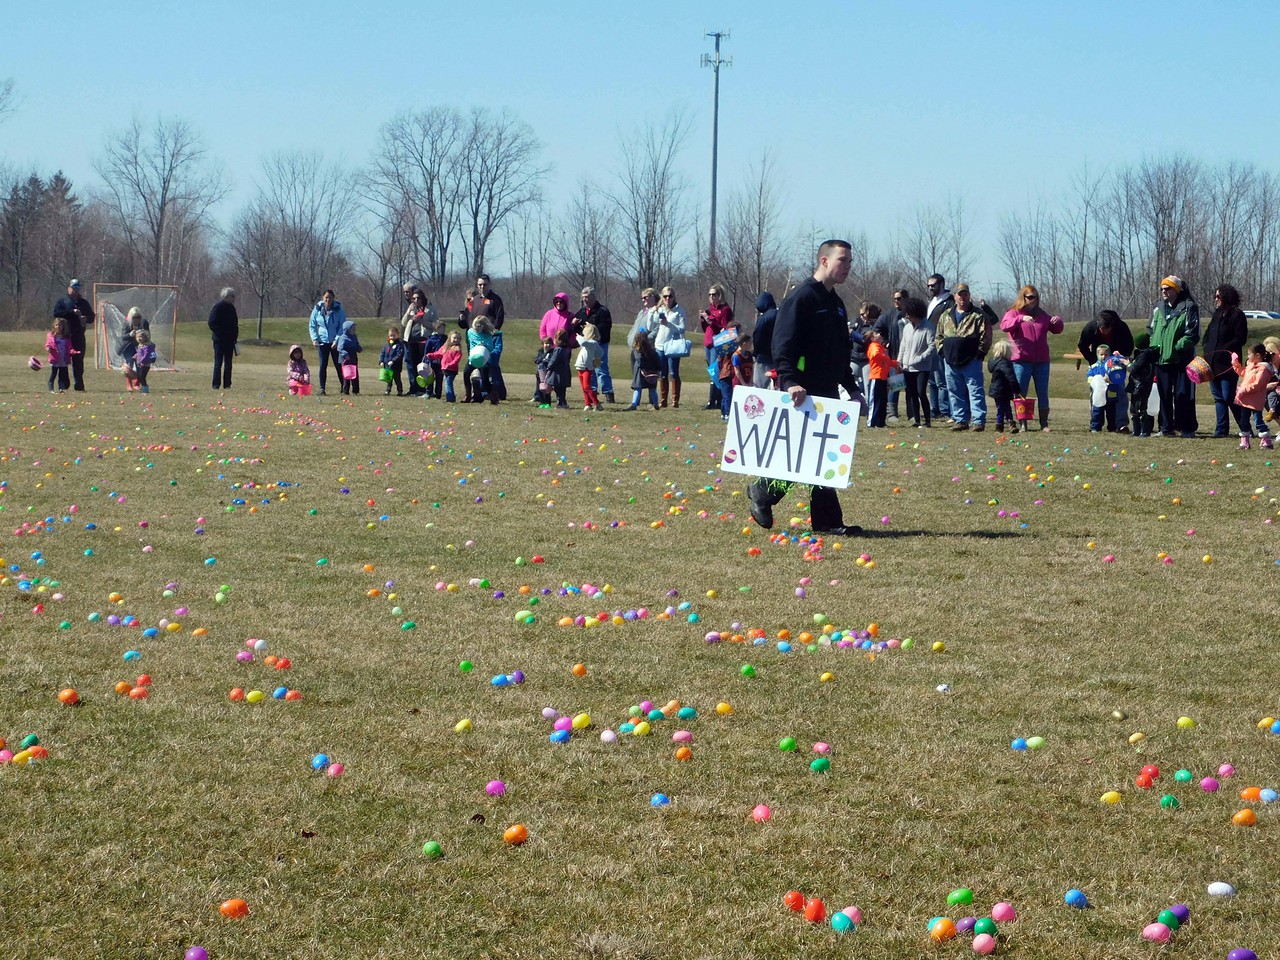 NATHAN HAVENNER / GAZETTE Children wait with their parents for the Montville Township Easter Egg Hunt to begin Sunday afternoon at Cobblestone Park.